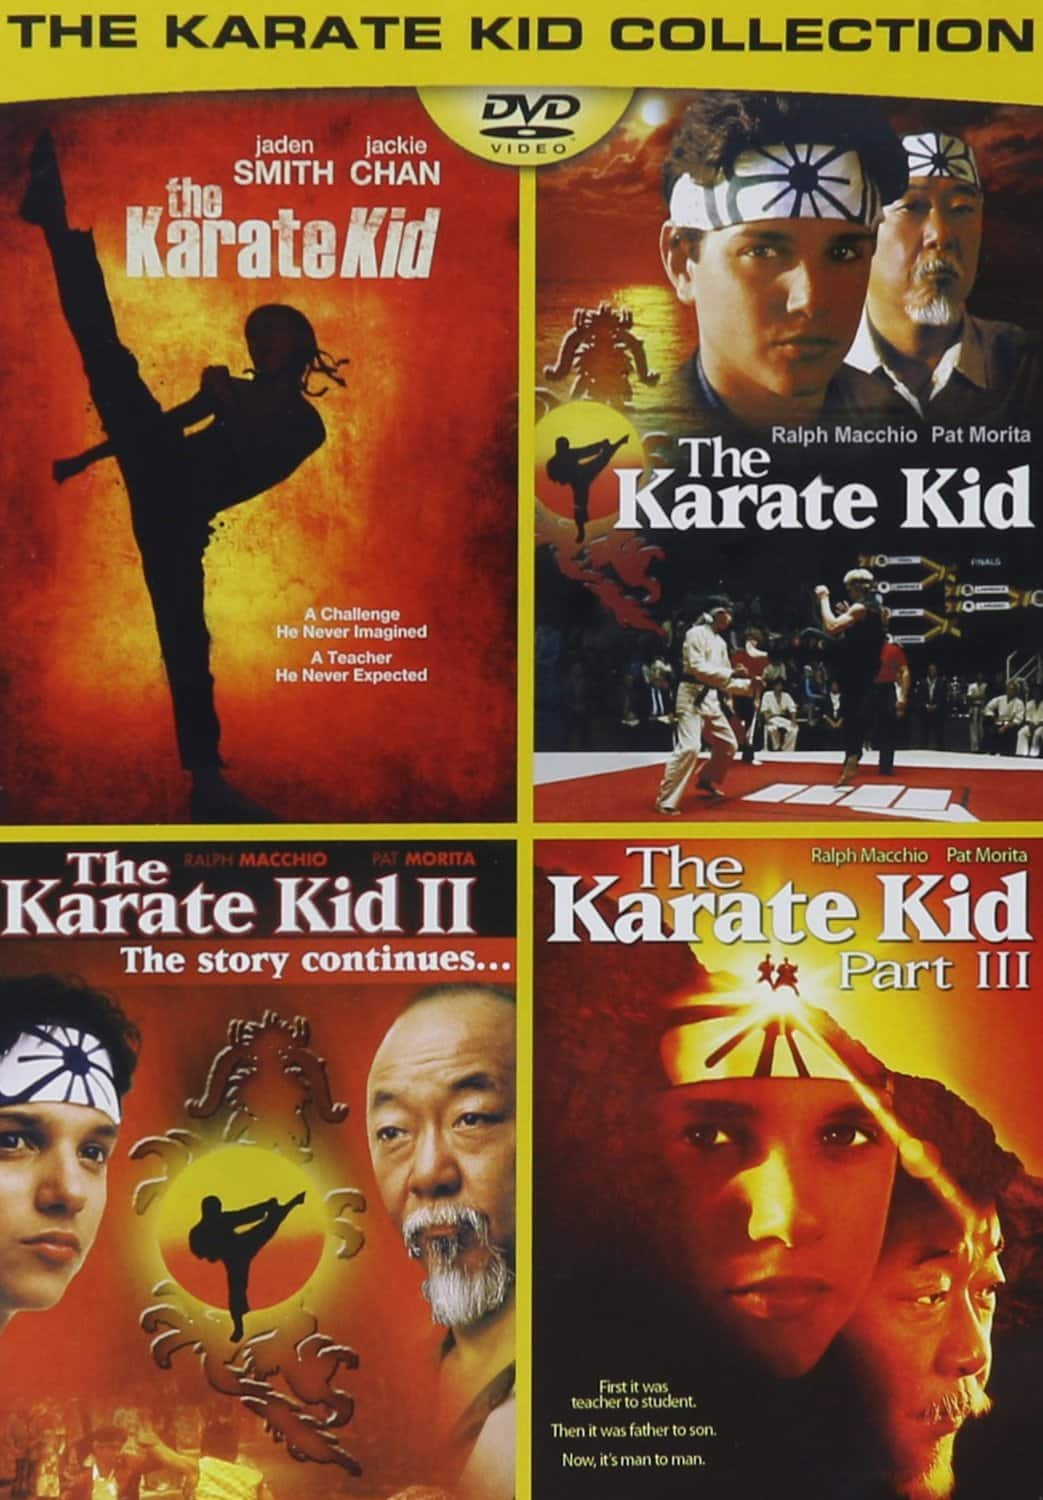 The Karate Kid Collection (DVD)  $4